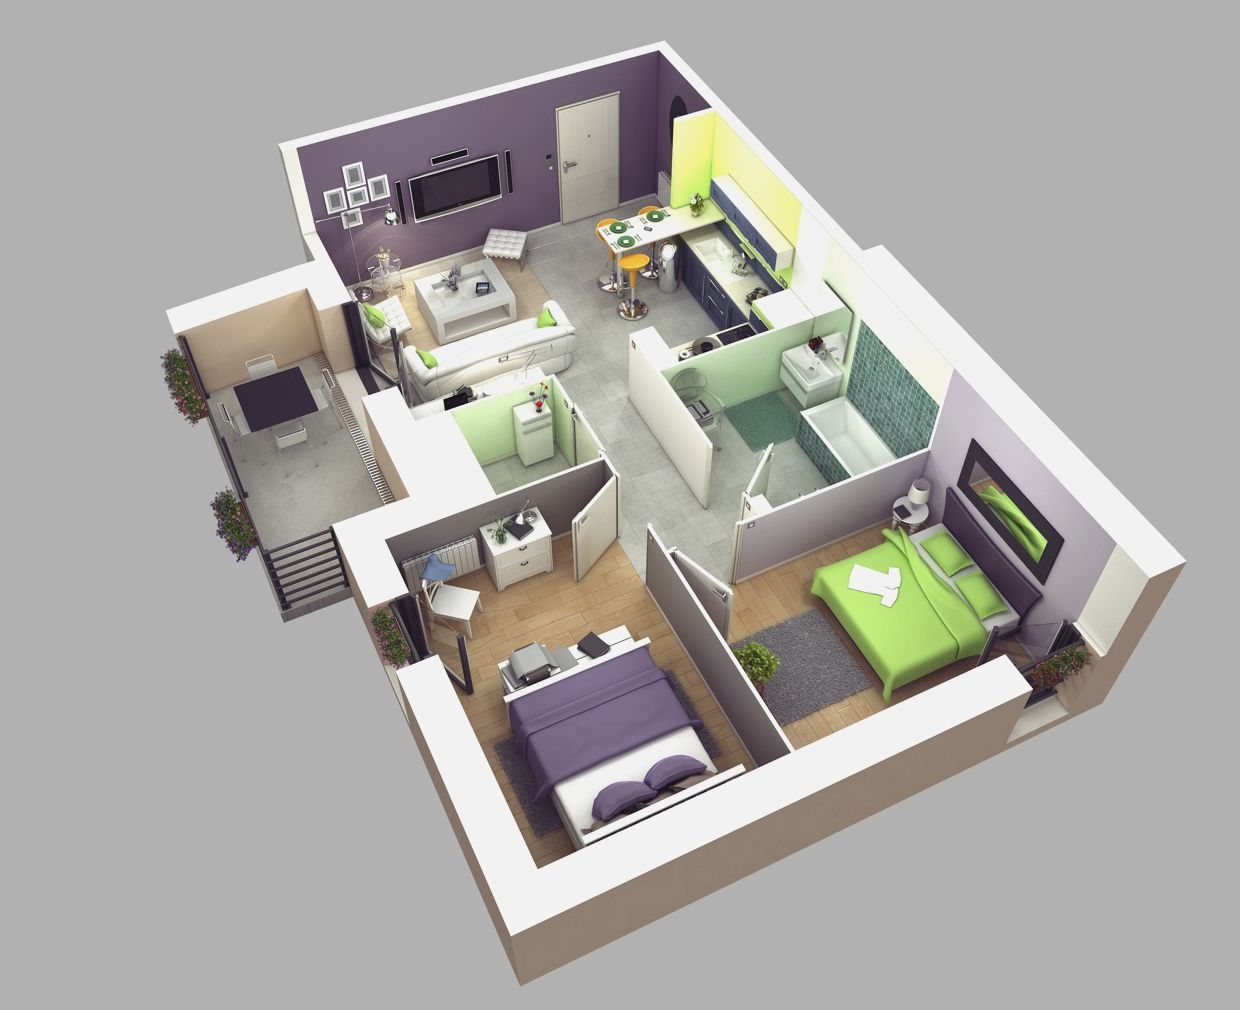 Merveilleux 3 Bedroom House Designs 3d   Buscar Con Google